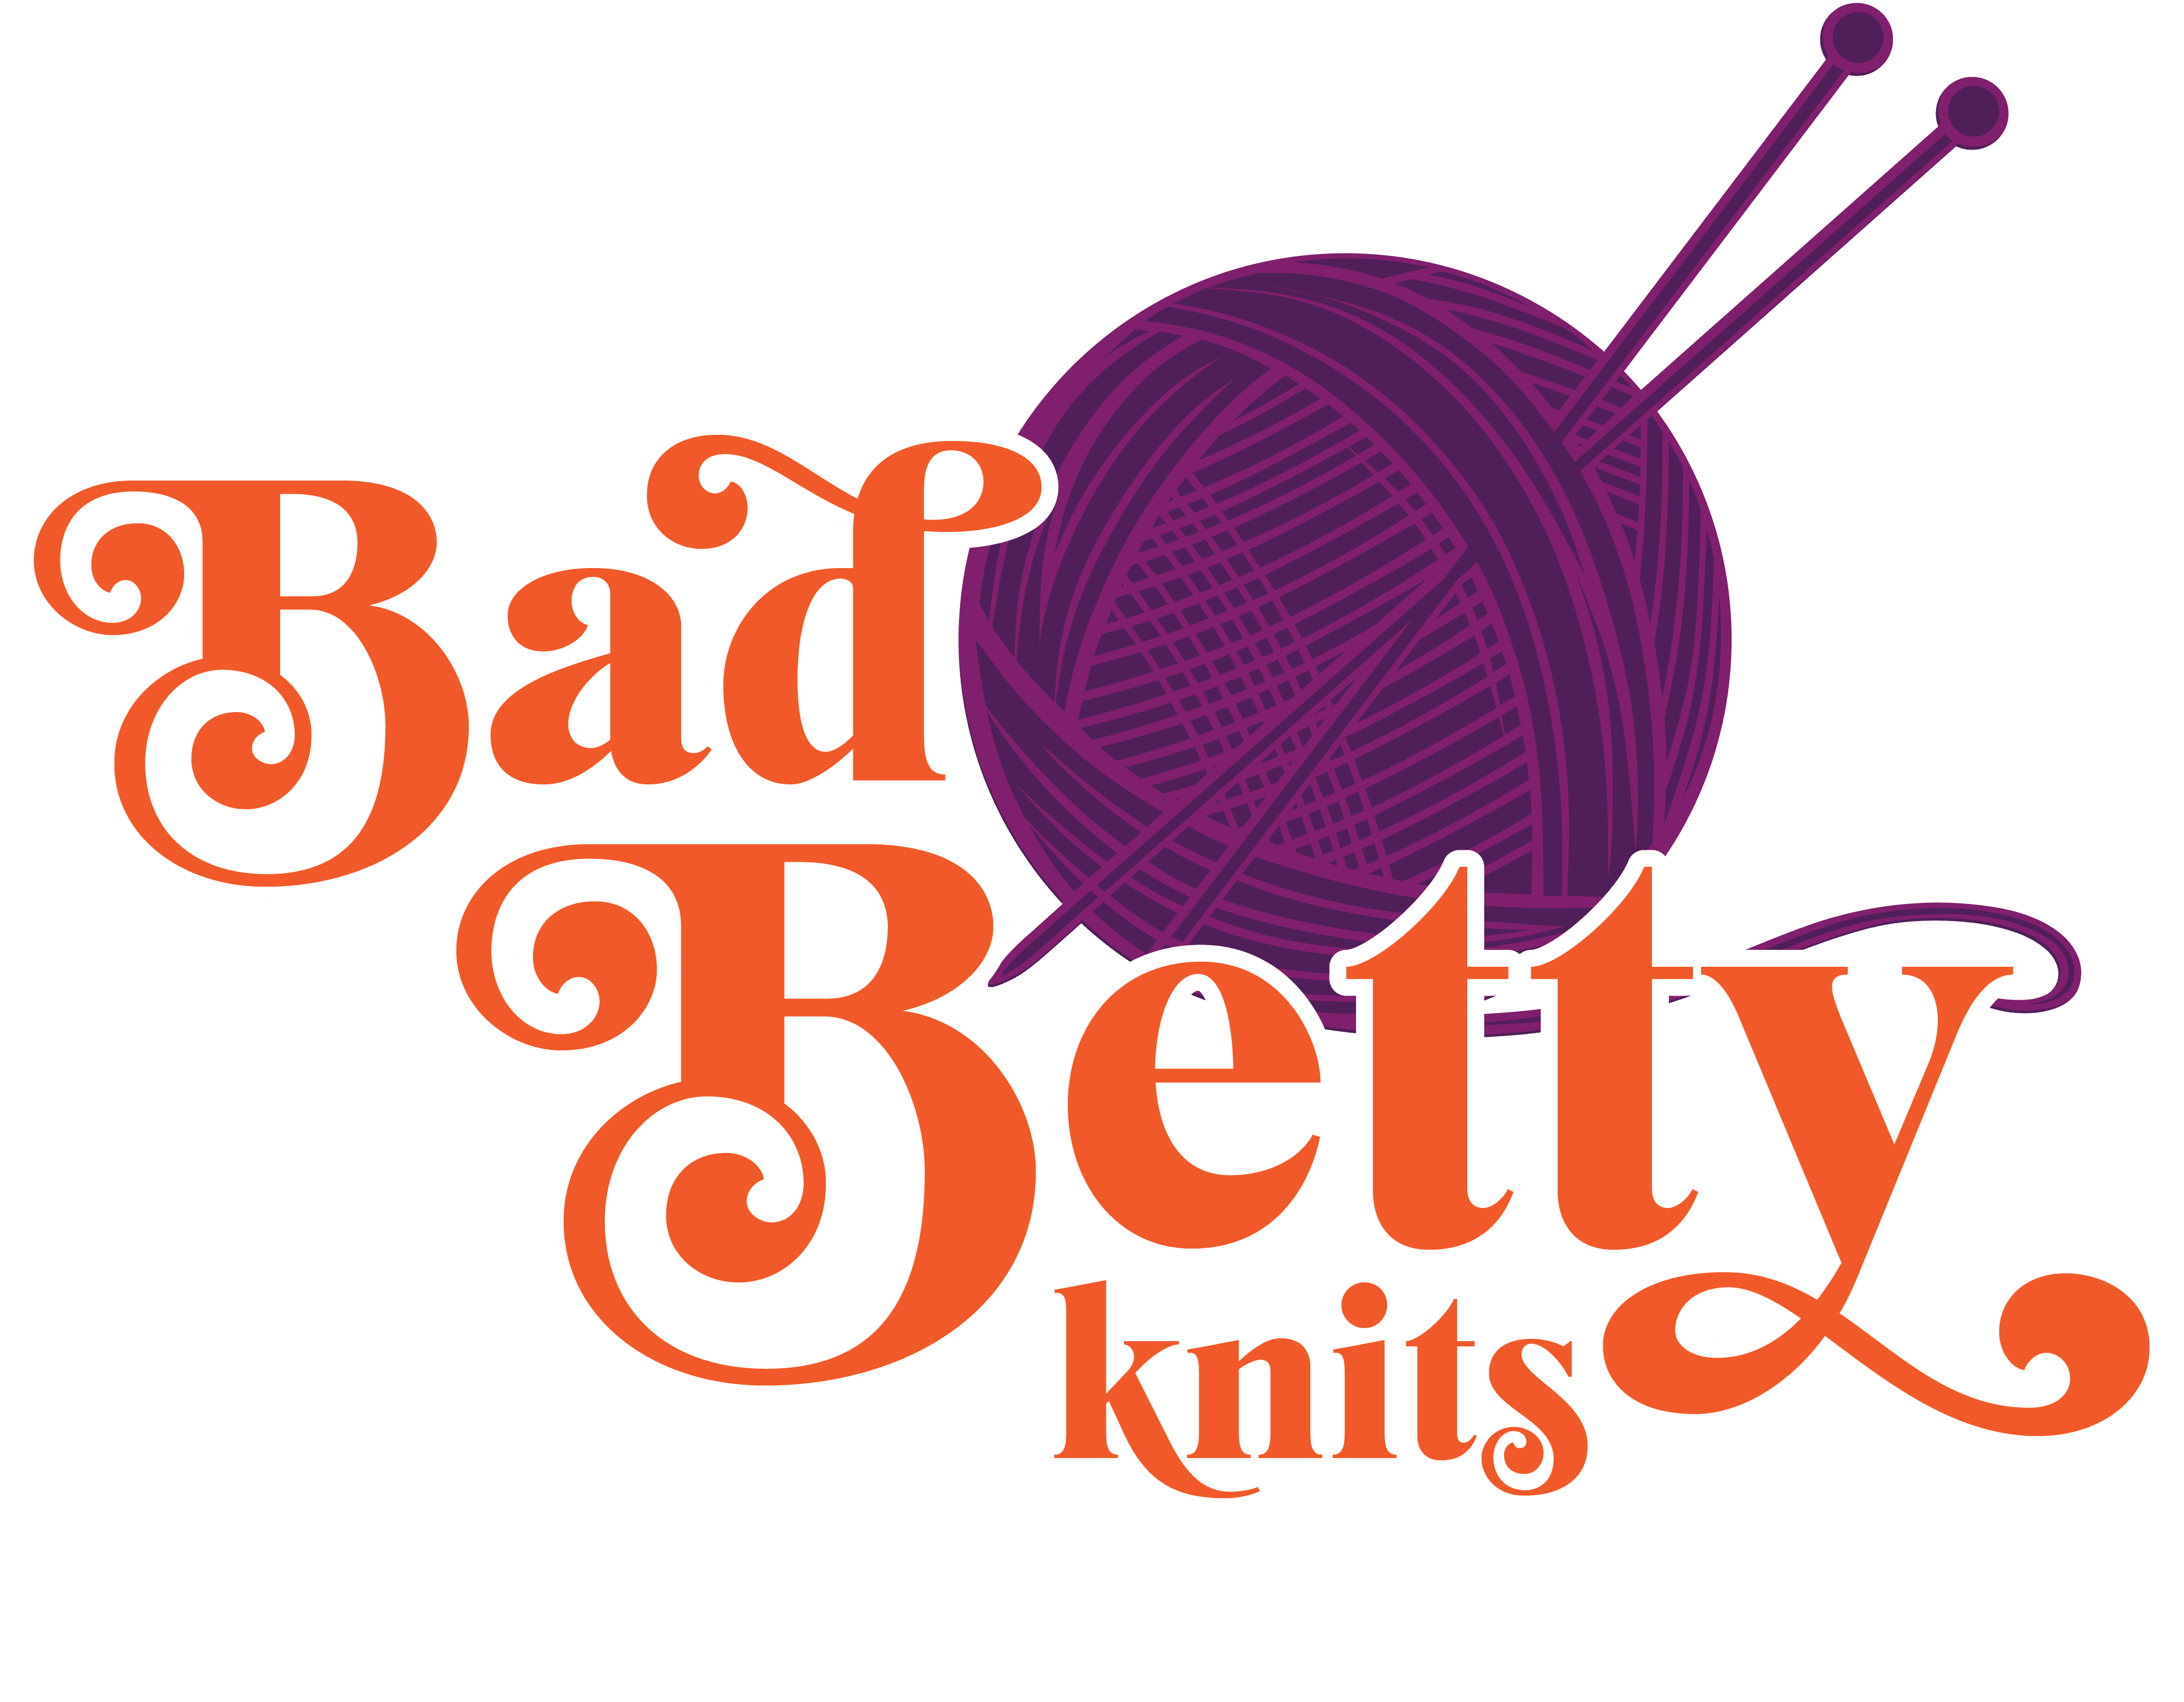 Bad Betty Knits